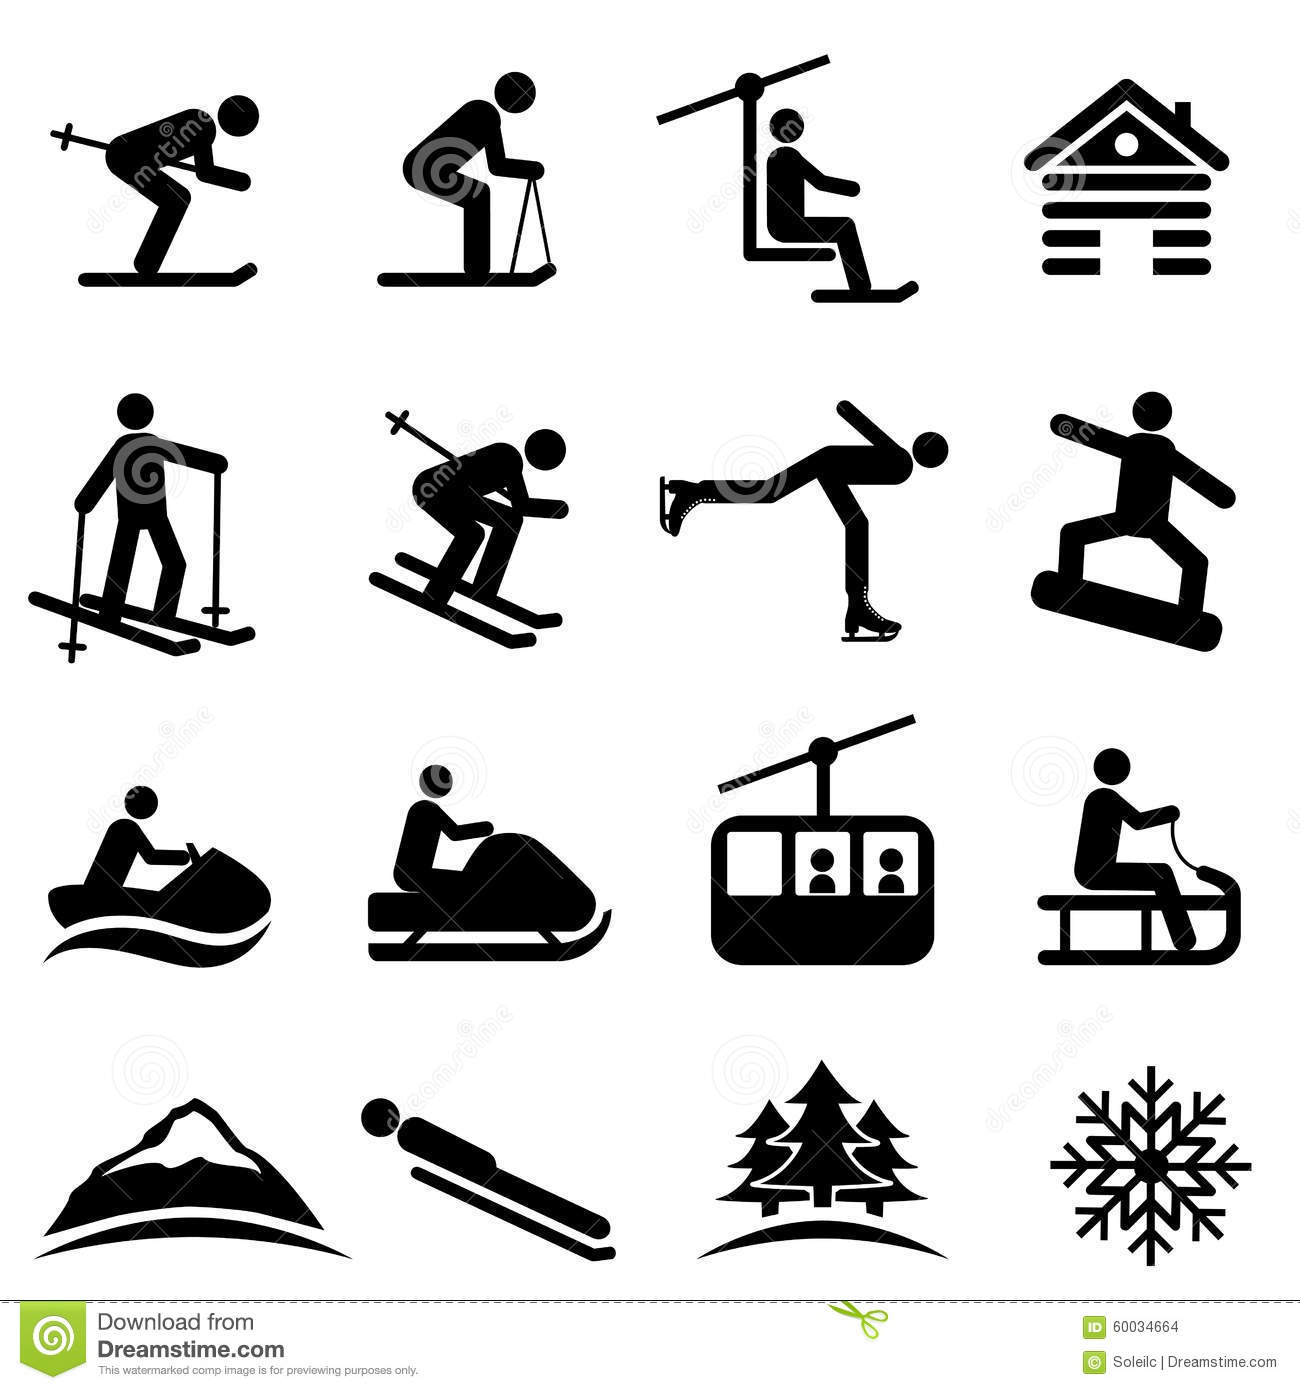 Ski, snow and winter icons stock vector. Illustration of mountain - 60034664